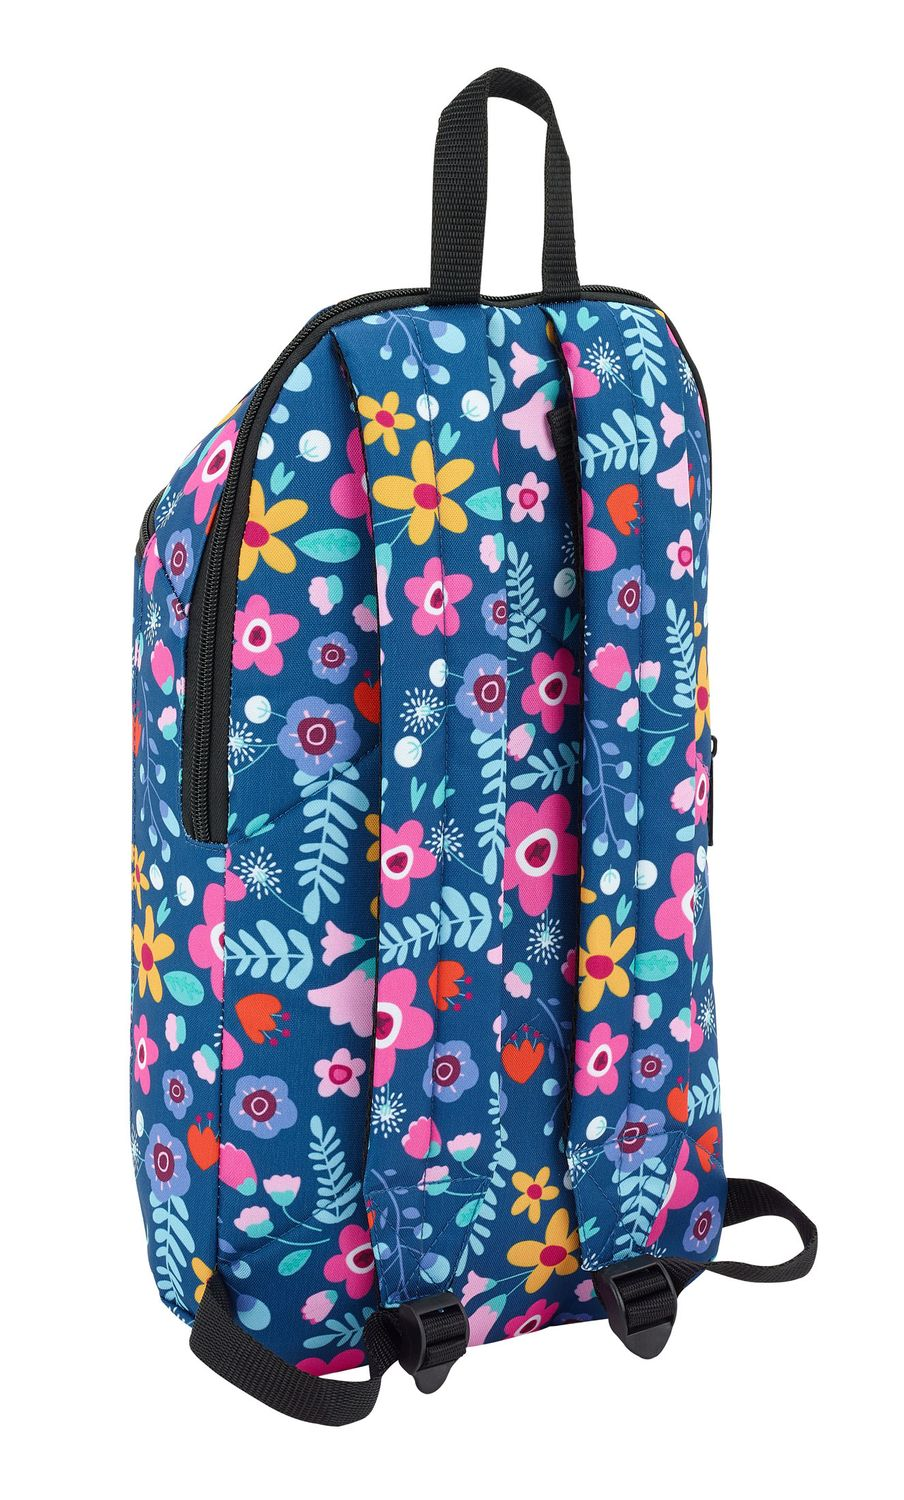 Blackfit8 Flowers Slim Backpack 39cm – image 2